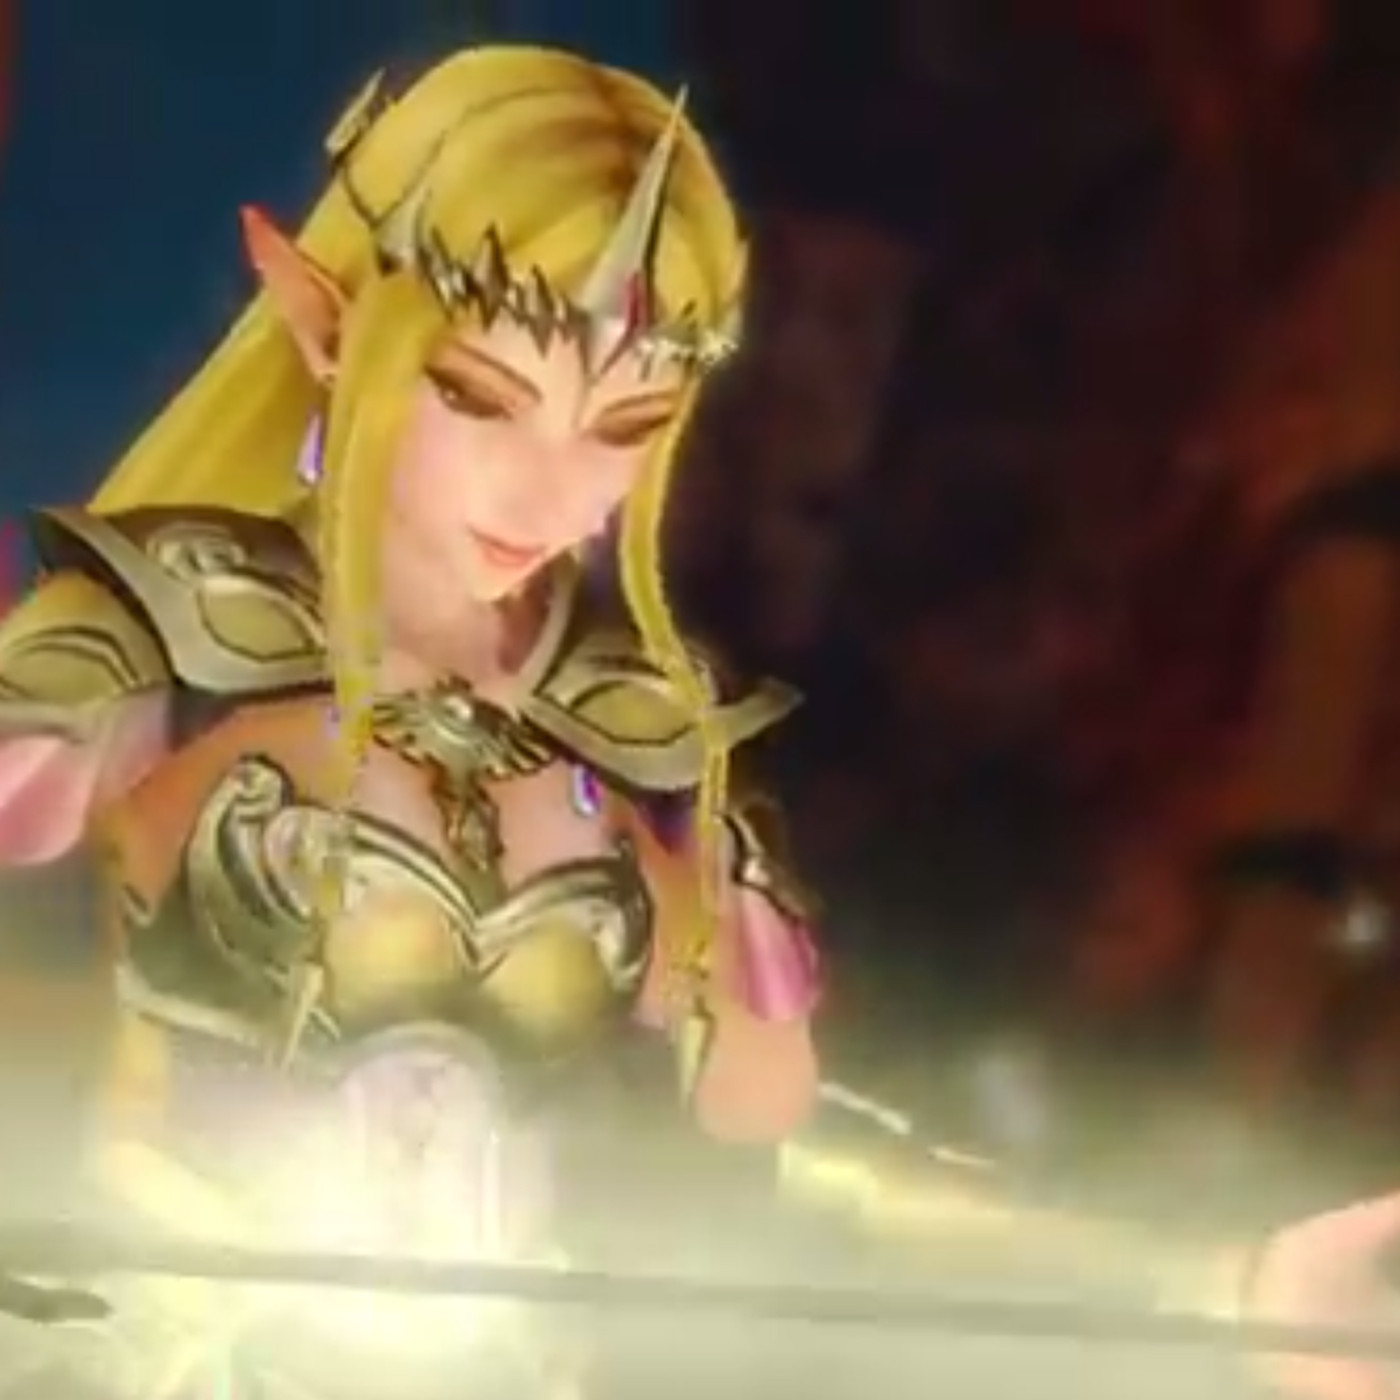 Watch Princess Zelda Kick Some Serious Ass In This Hyrule Warriors Trailer Polygon